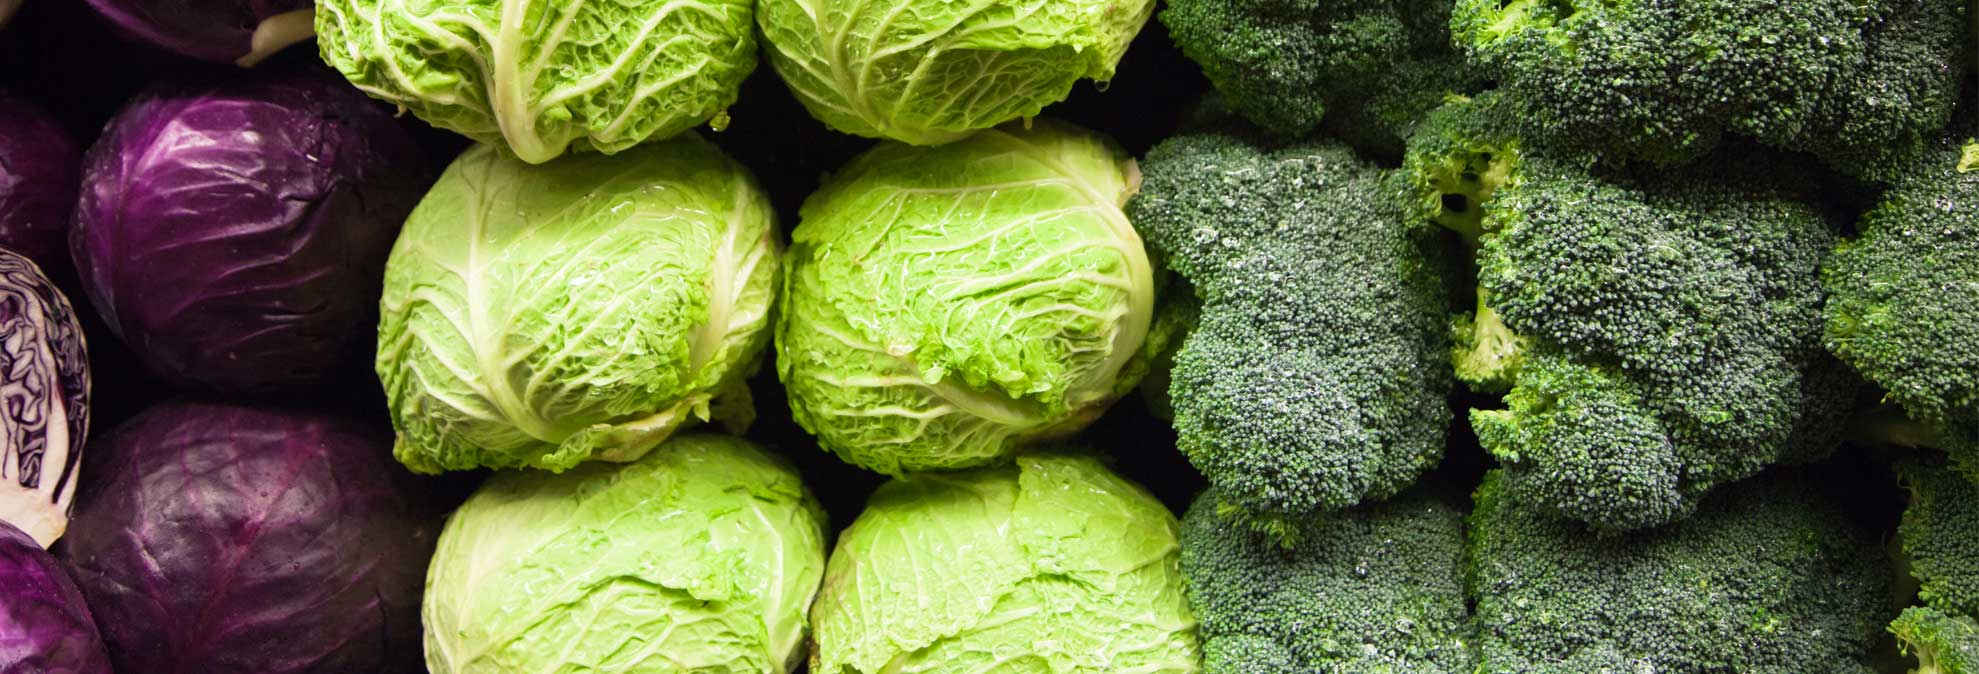 Infant Car Seat Guide Cruciferous Vegetables Consumer Reports